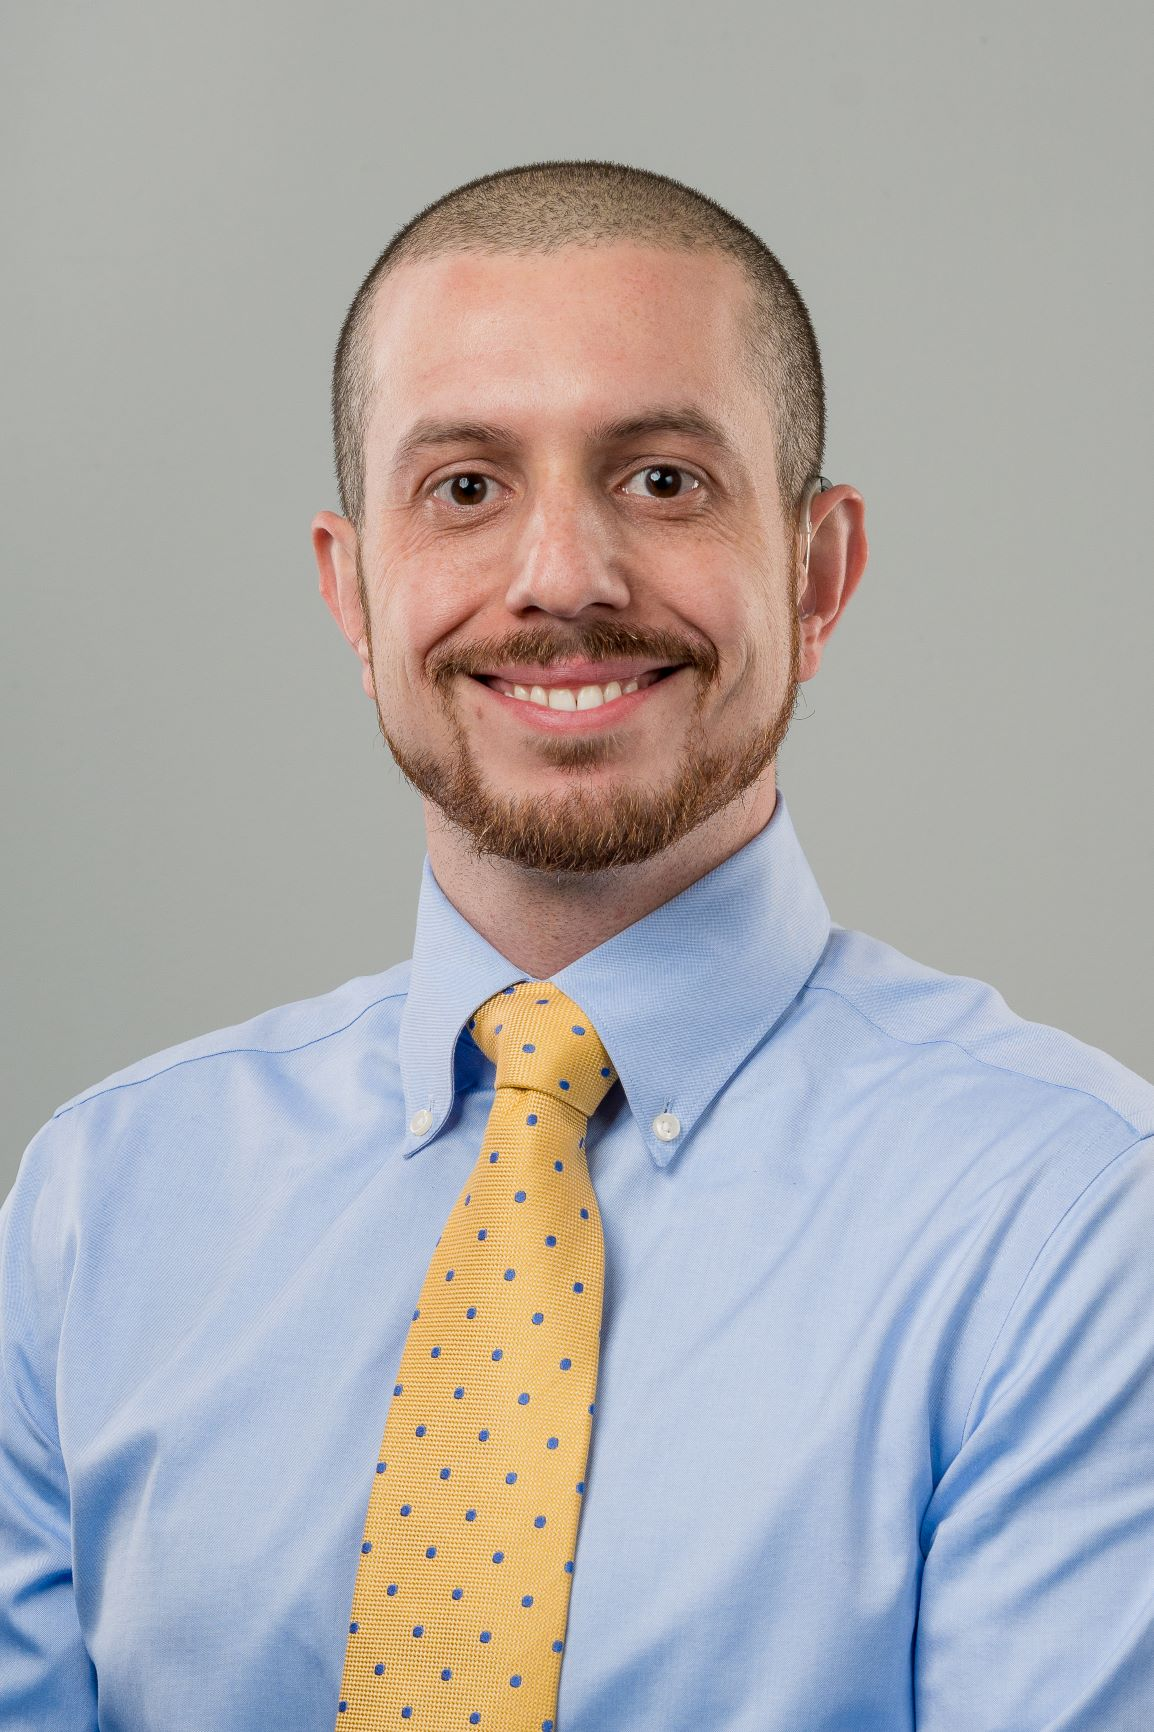 Ian DeAndrea-Lazarus, M.D. and Ph.D. candidate in the Medical Scientist Training Program